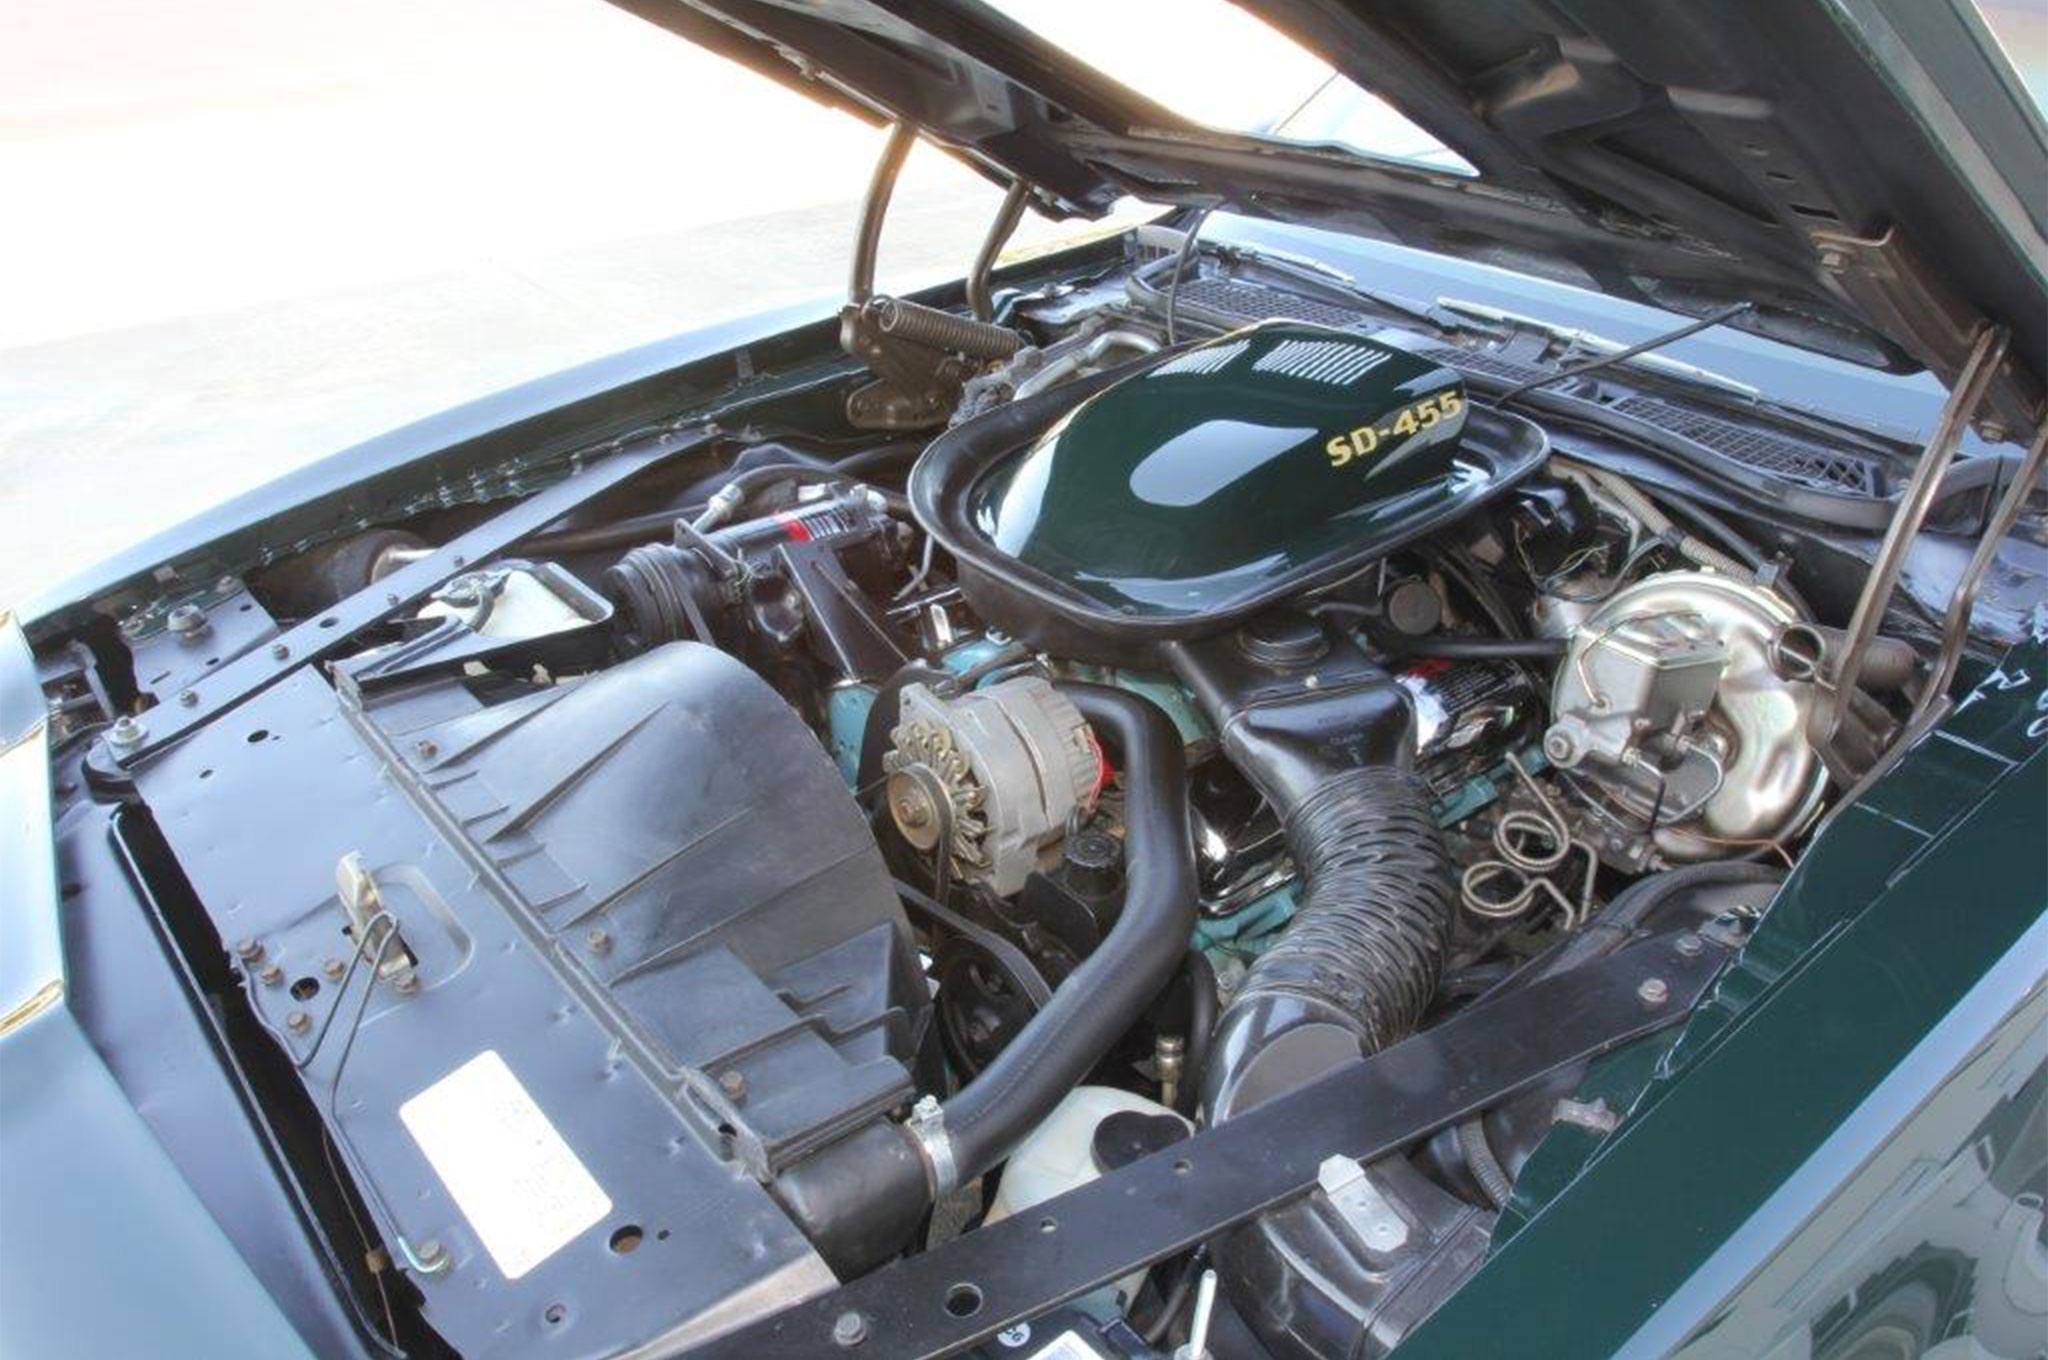 Under hood is where this Trans Am packs its punch. The SD-455 was net rated at 290 hp and 395 ft/lbslb-ft from the factory, and was capable of generating quarter quarter-miles times around 14 seconds with a trap speed of 100 mph in this configuration. The owner added chrome valve covers and eliminated the SD-455's unique PCV valve routing for improved visual appeal.